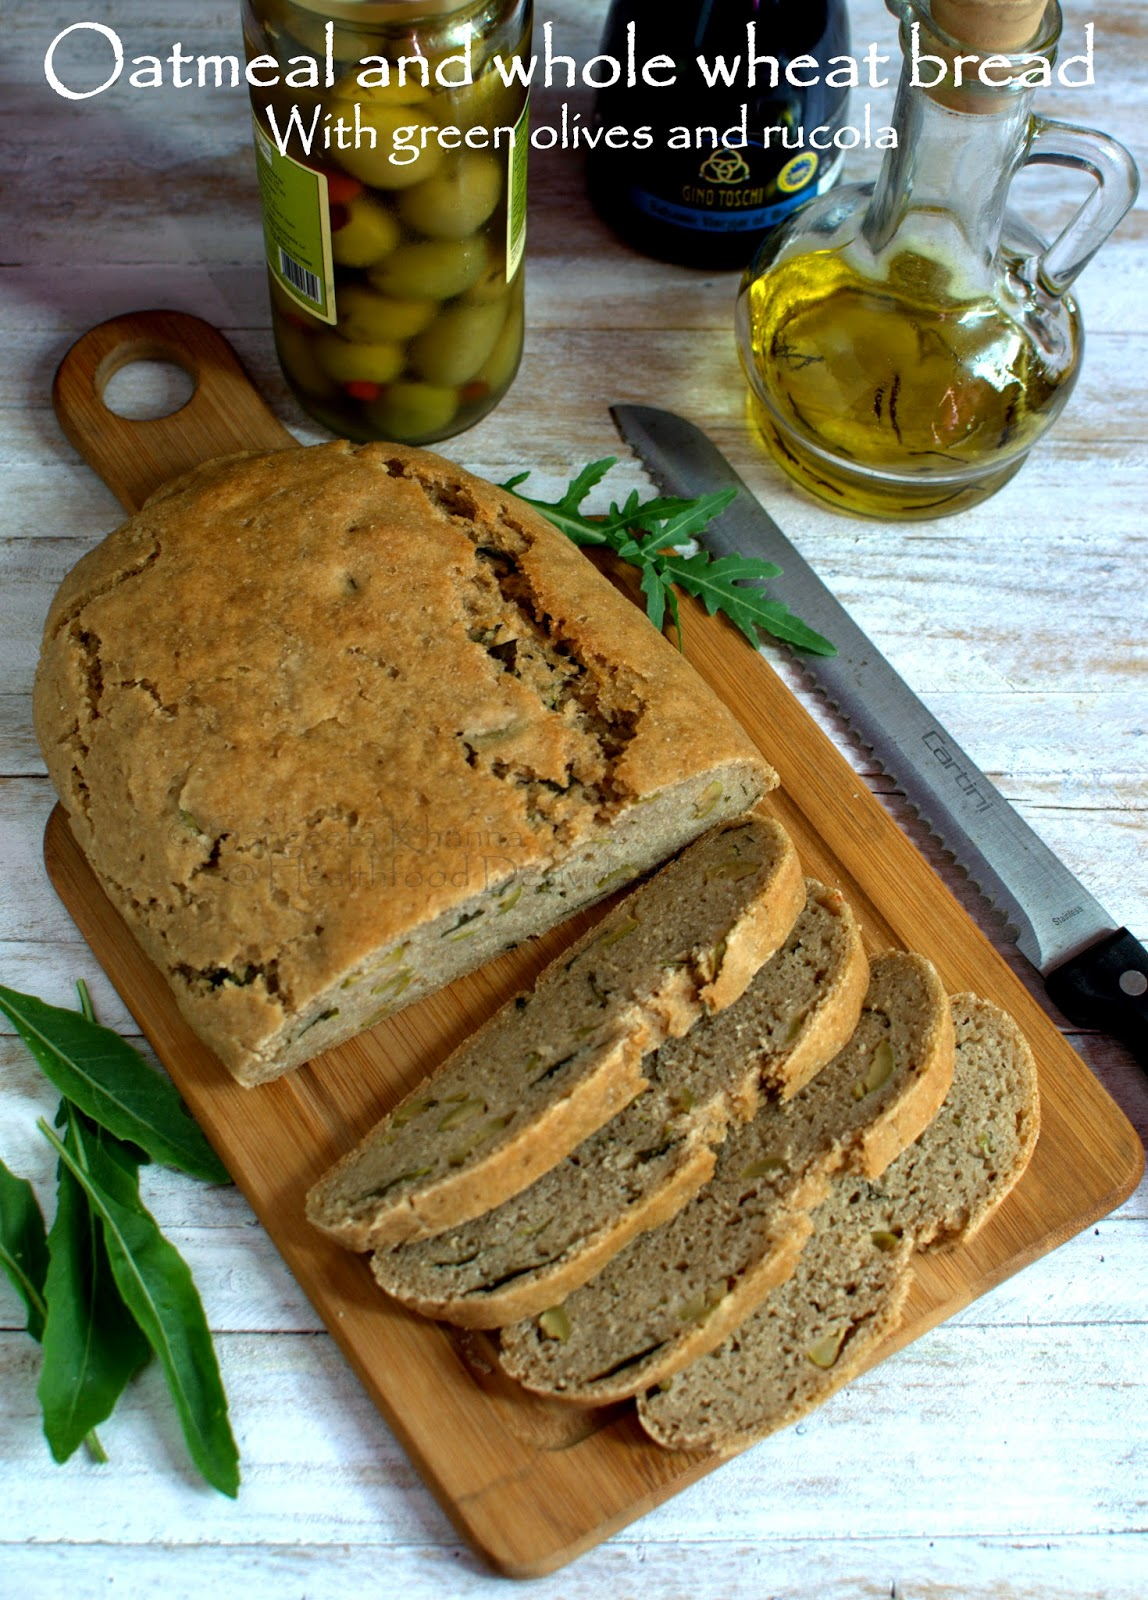 Baking breads : oatmeal and whole wheat bread with green olives and rucola